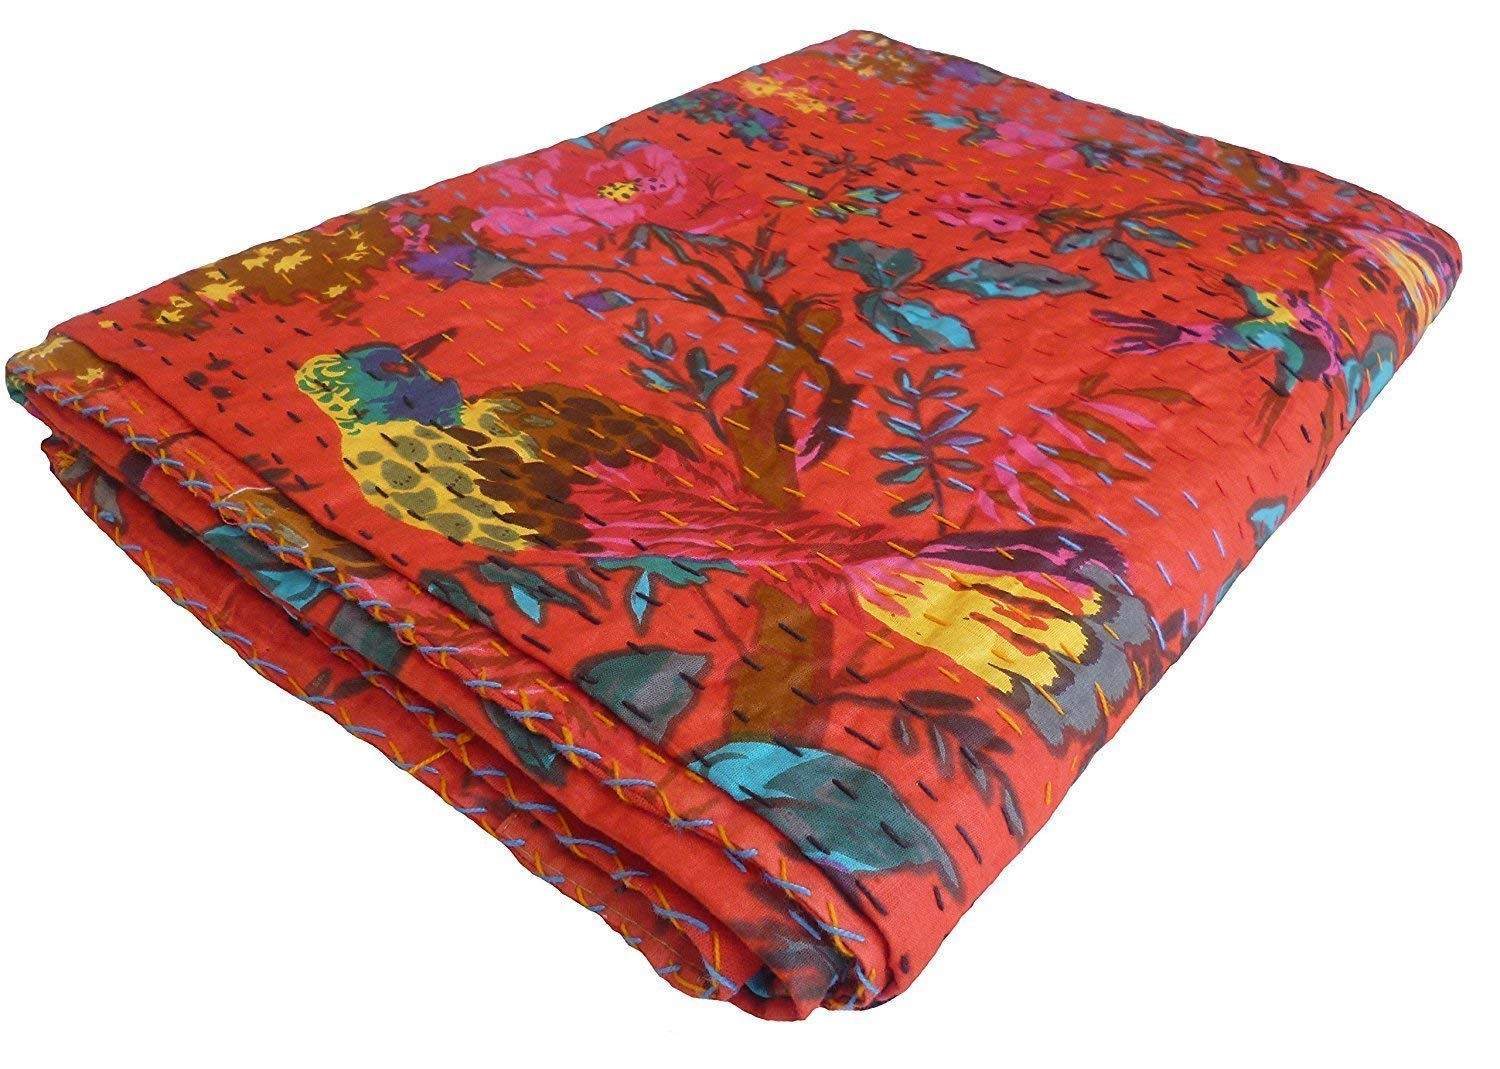 Bird Print King Size Kantha Quilt RED , Kantha Blanket, Bed Cover, King Kantha bedspread, Bohemian Bedding Kantha Size 90 Inch x 108 Inch Colors Of Rajasthan TWT8467